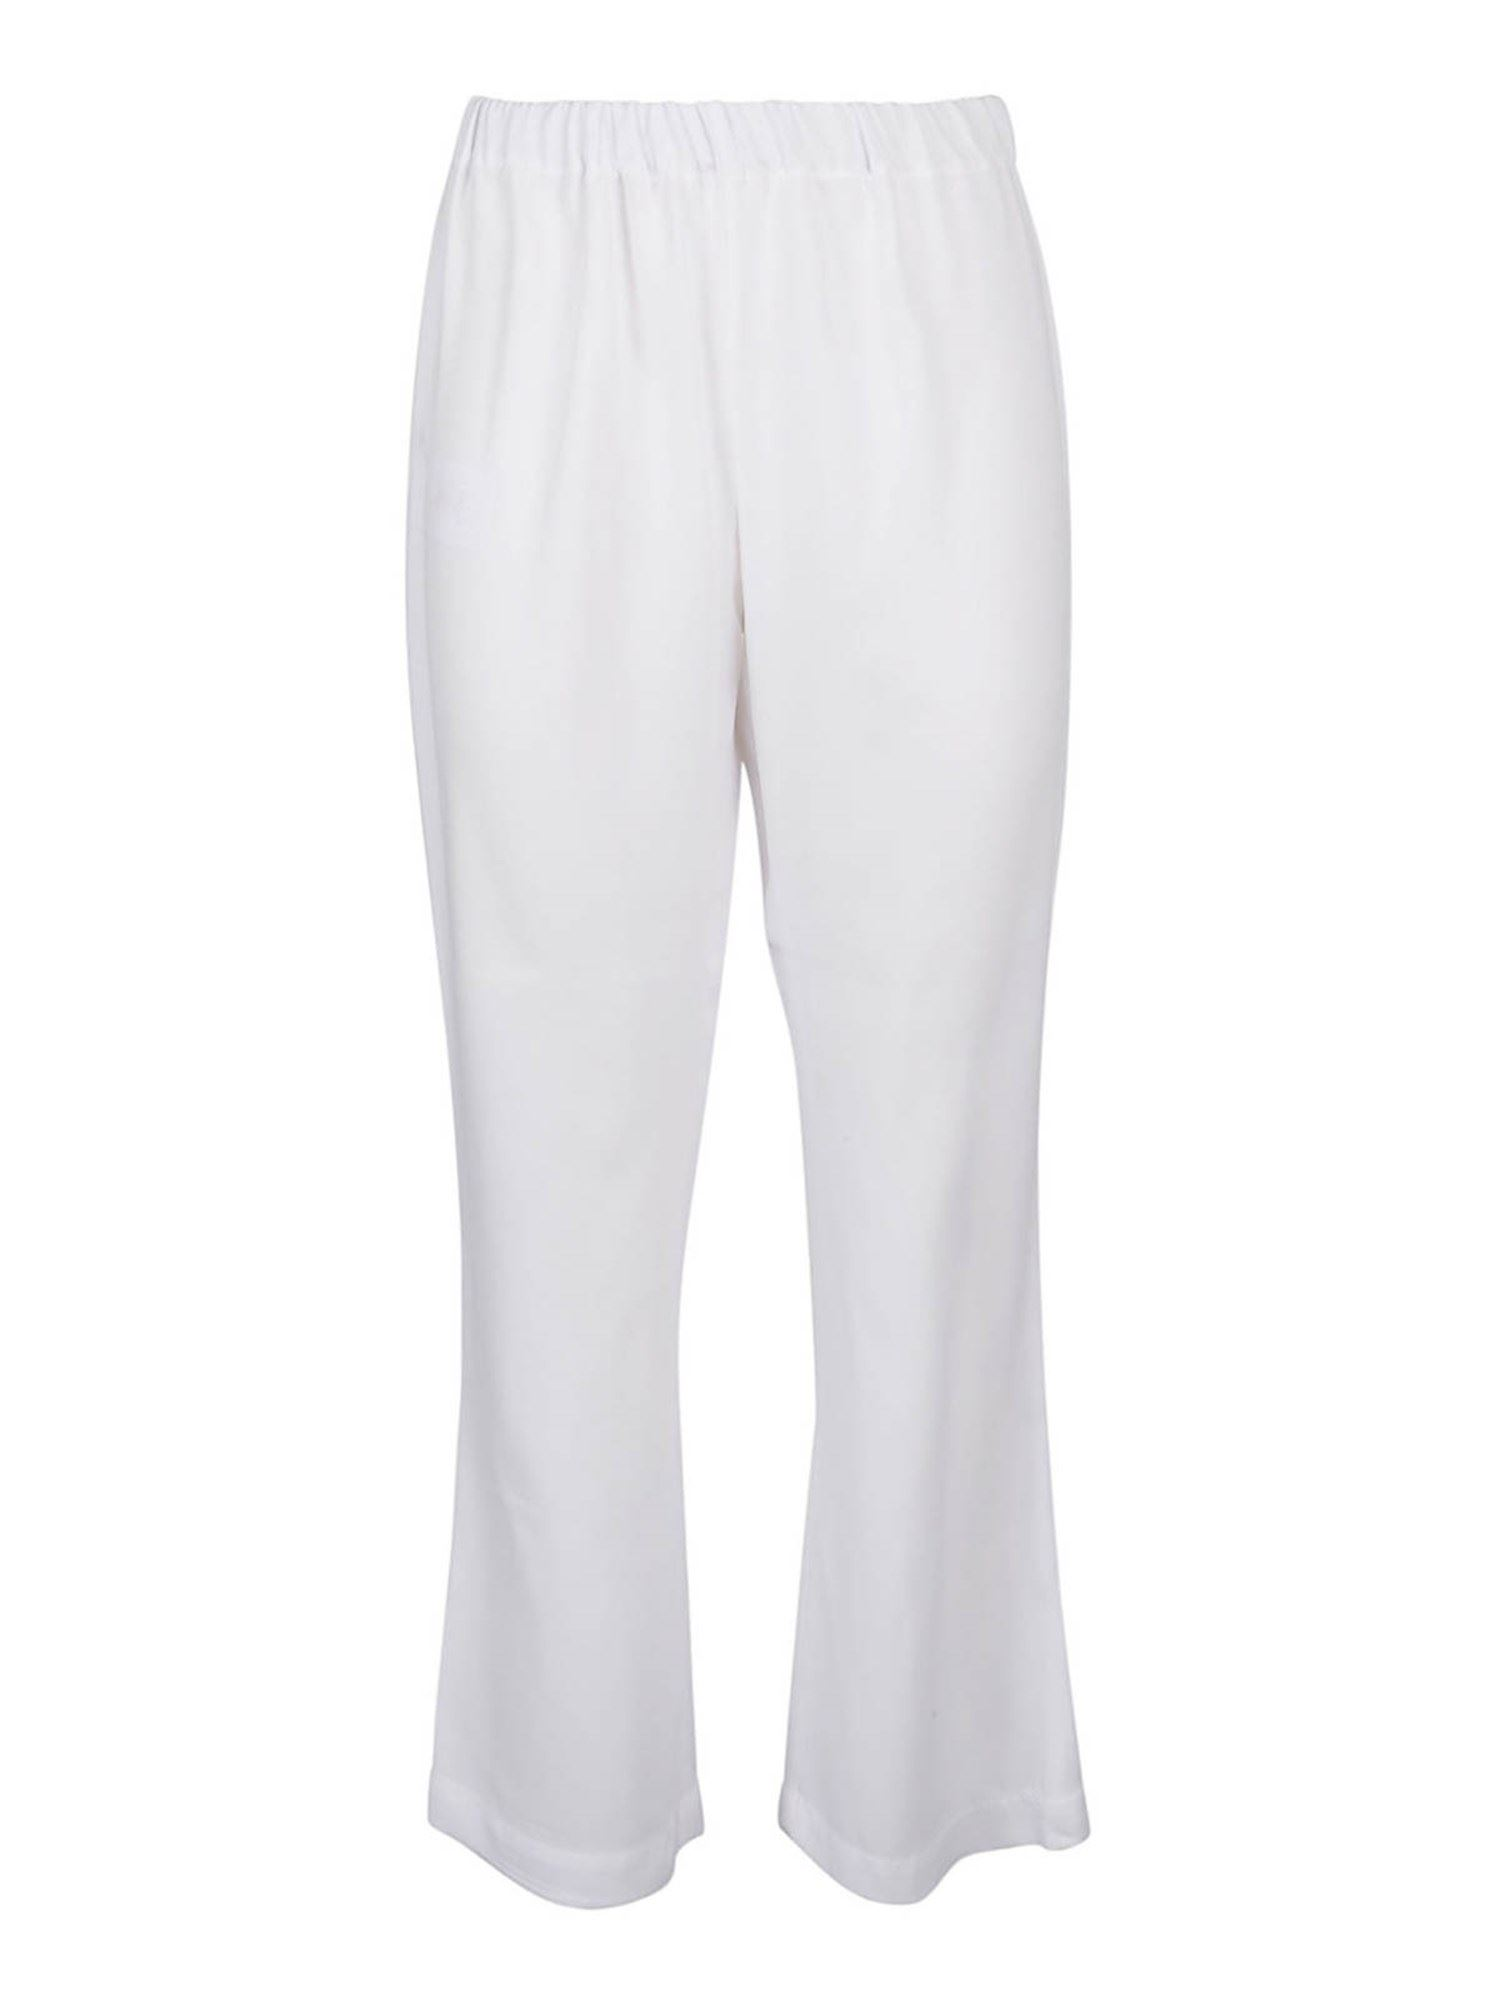 Marni Pants VISCOSE BLEND TROUSERS IN WHITE